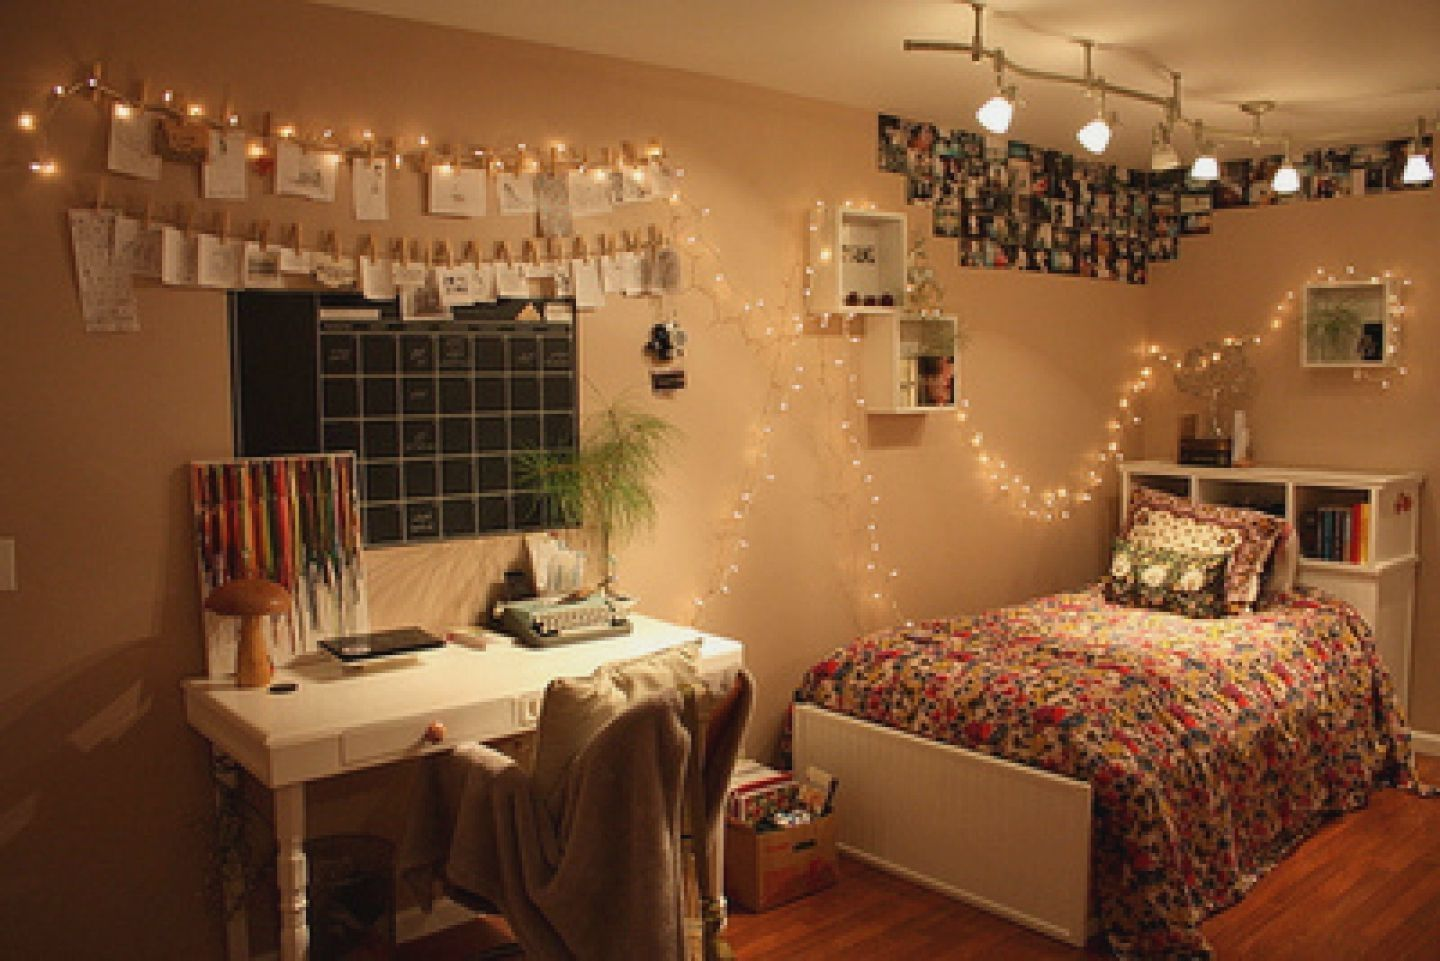 Breathtaking Simple Bedroom For Teenage Girls Tumblr Along -6887